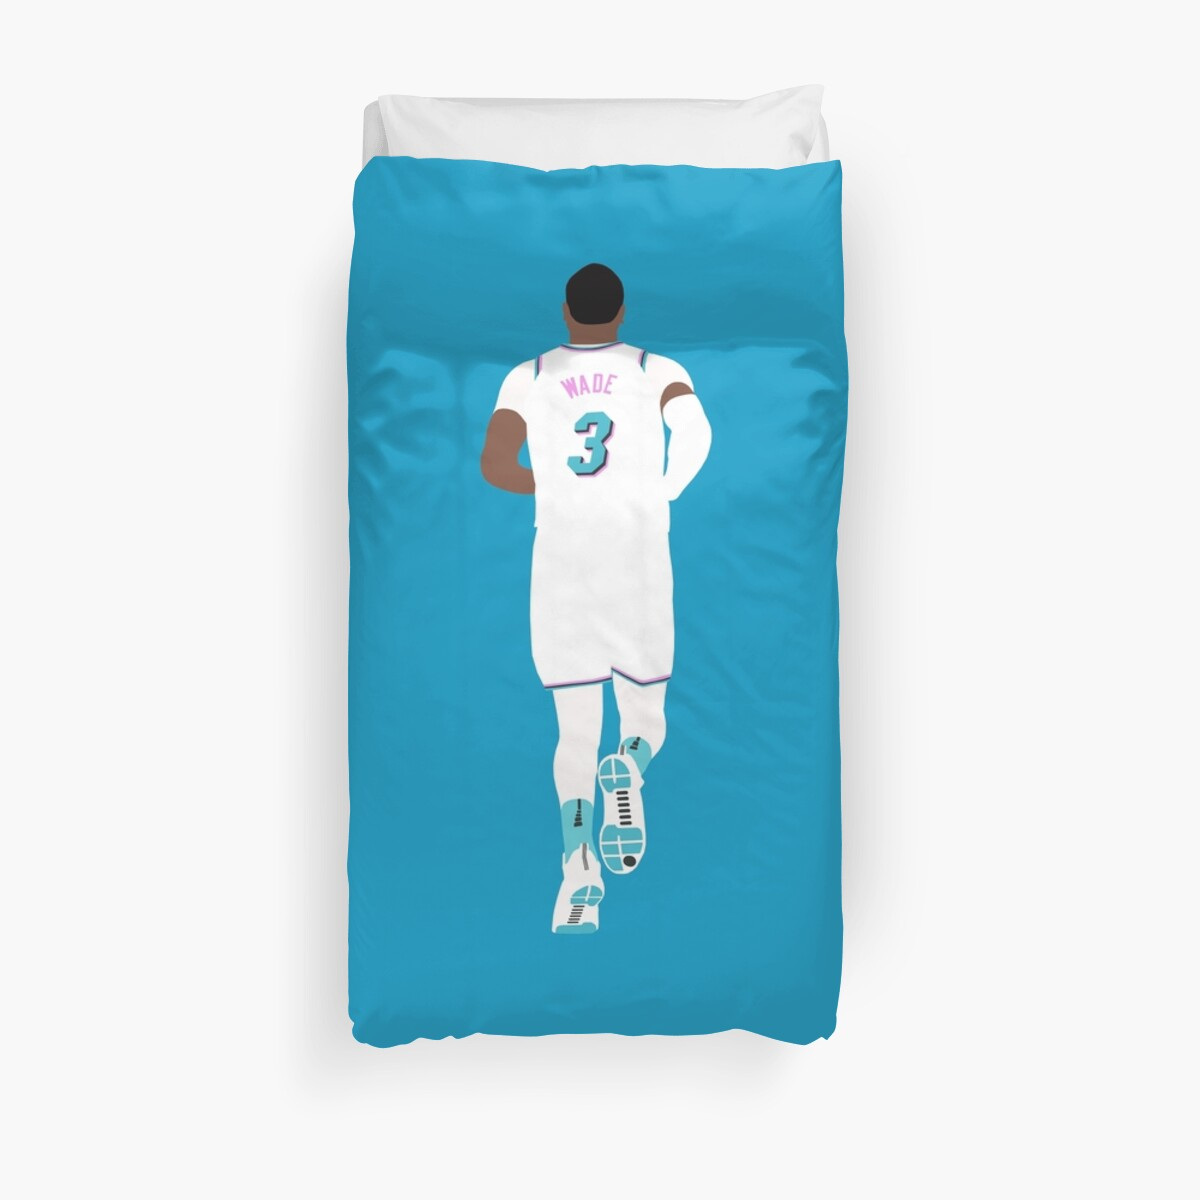 reputable site 656cc 52185 'Dwyane Wade Miami Vice' Duvet Cover by RatTrapTees